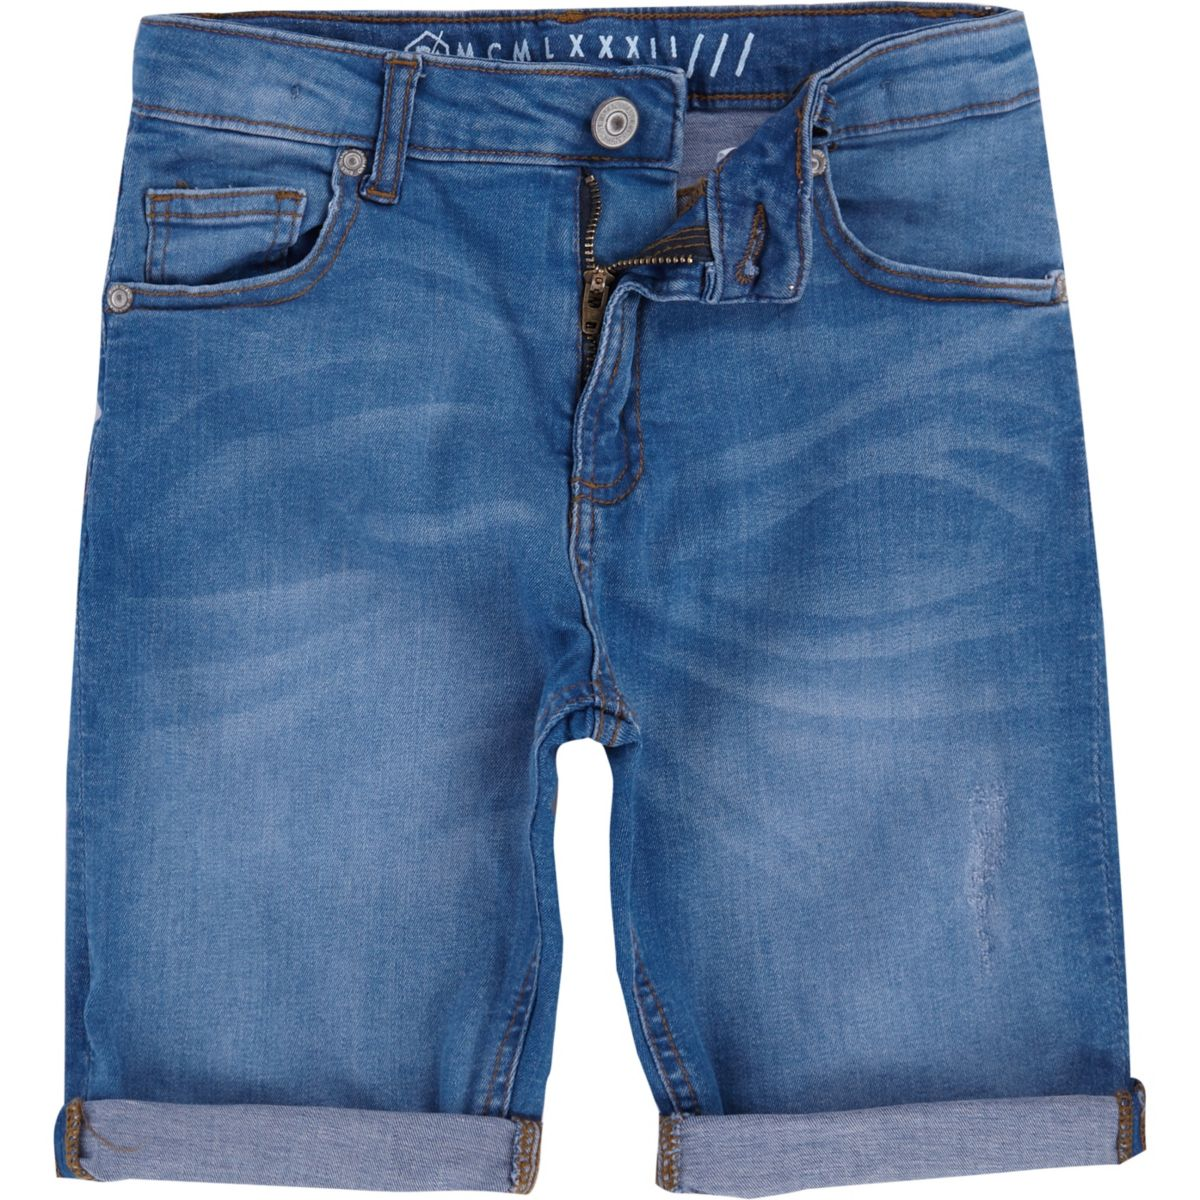 Boys mid blue Dylan denim shorts - Denim Shorts - Shorts - boys